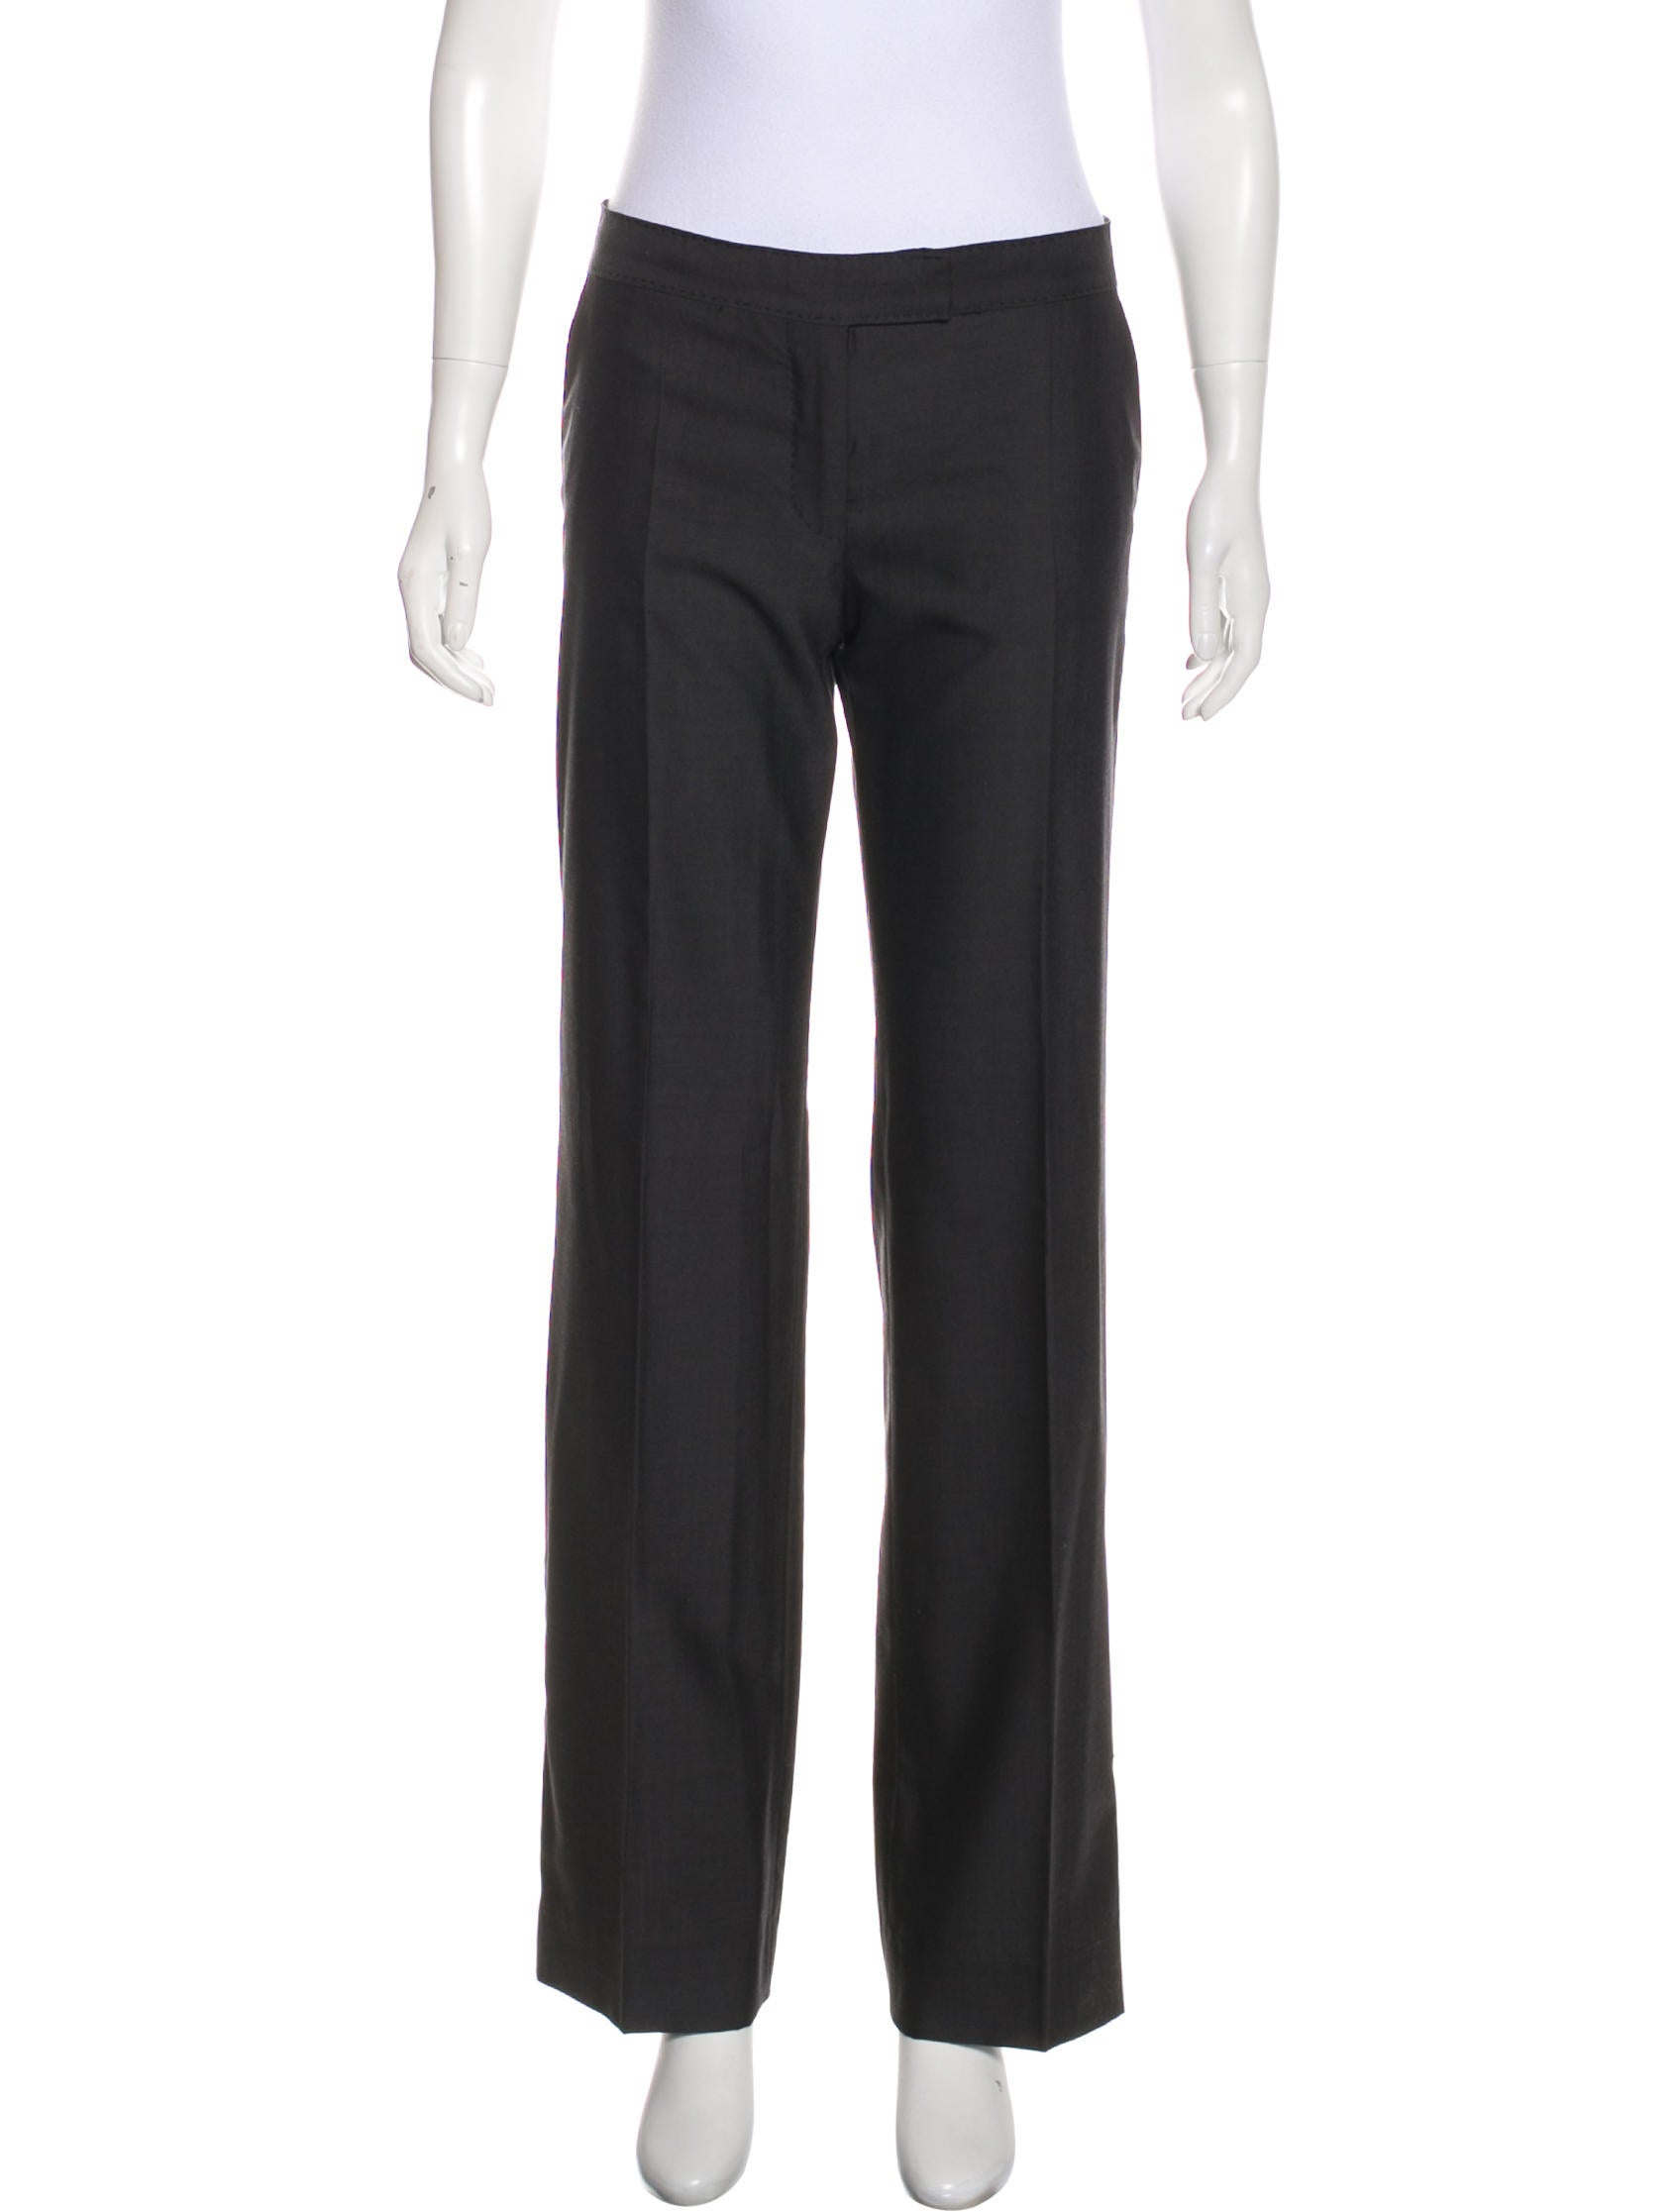 Stella McCartney Mid-Rise Wide-Leg Pants New Styles Cheap Price b9JgK